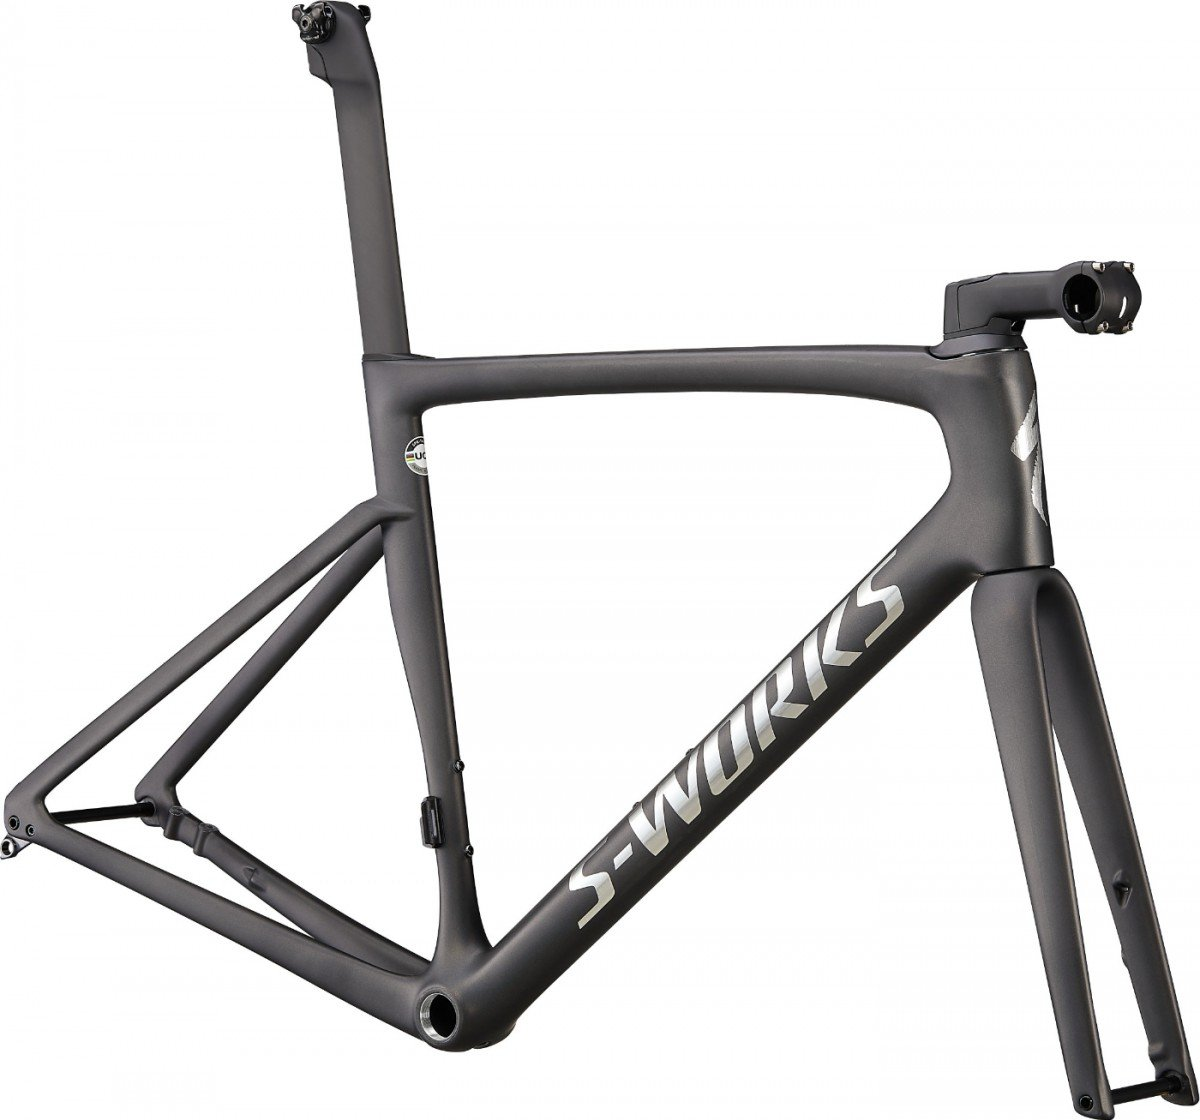 EAN-code: 70622-0056 Product: SPECIALIZED S-WORKS TARMAC SL7 FRAMESET, SATIN CARBON / SPECTRAFLAIR TINT / GLOSS BRUSHED C (Part-No: 70622-0056) at cycleXperience.nl